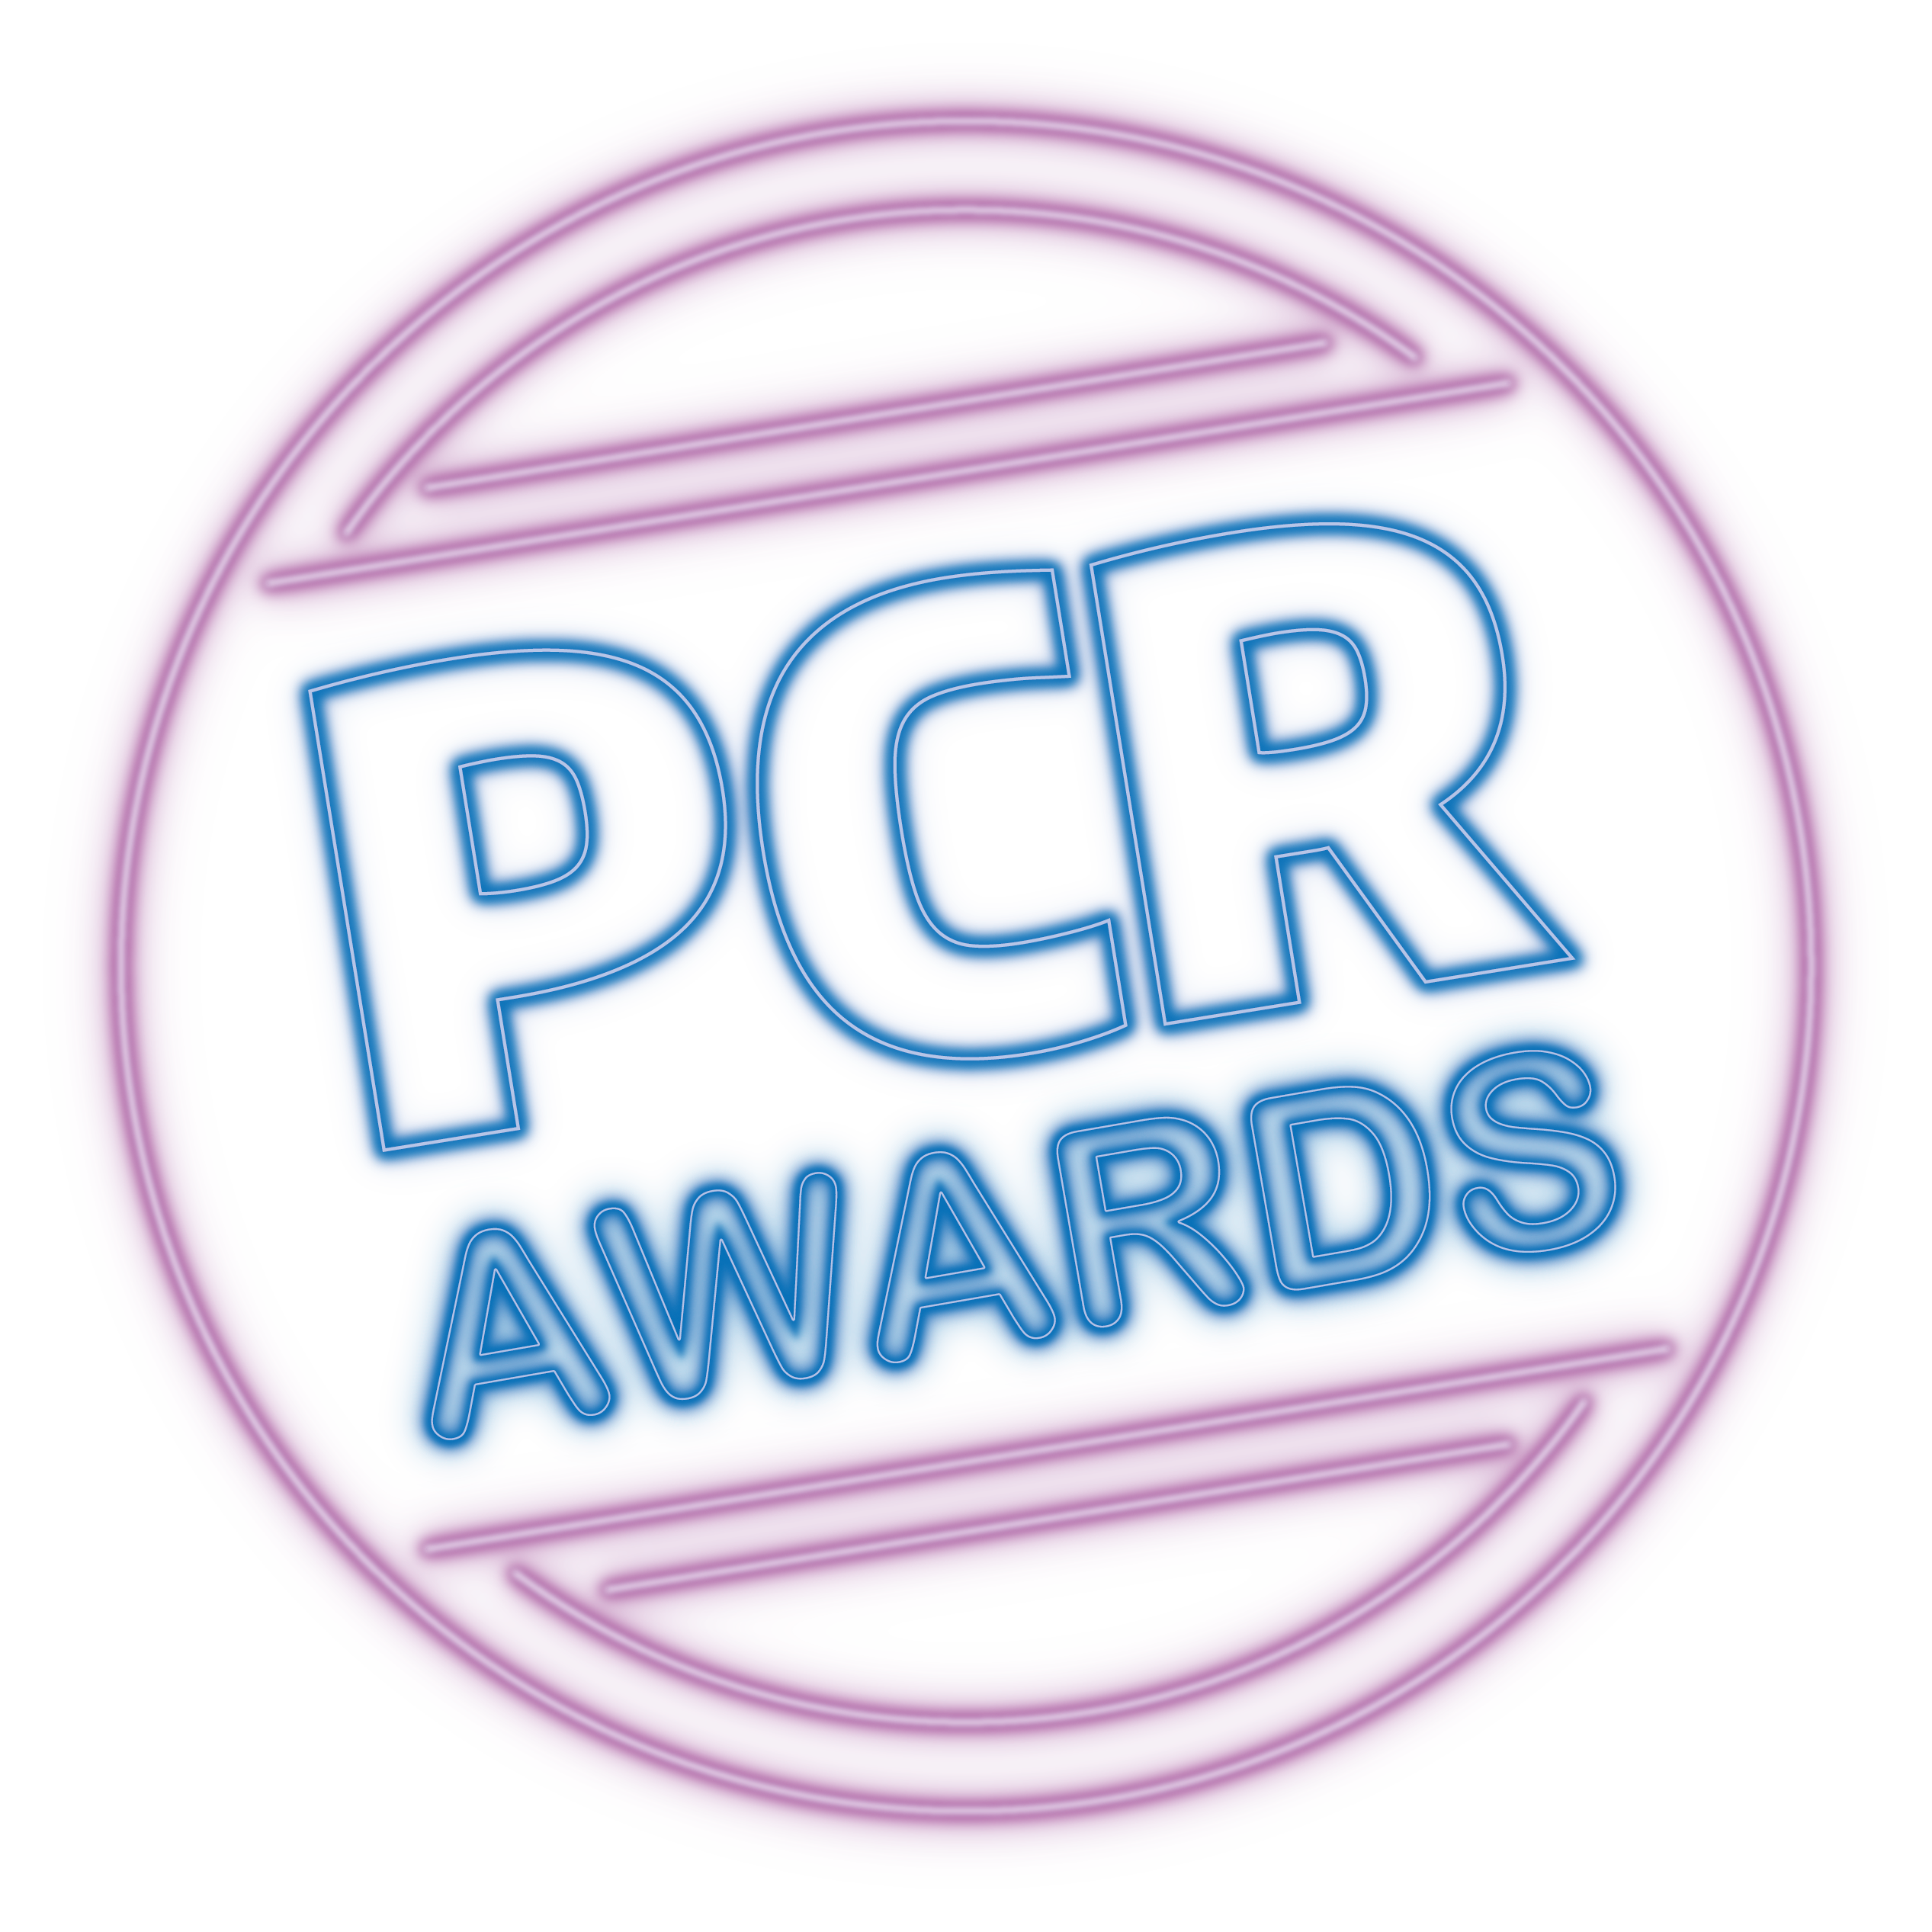 PCR Awards